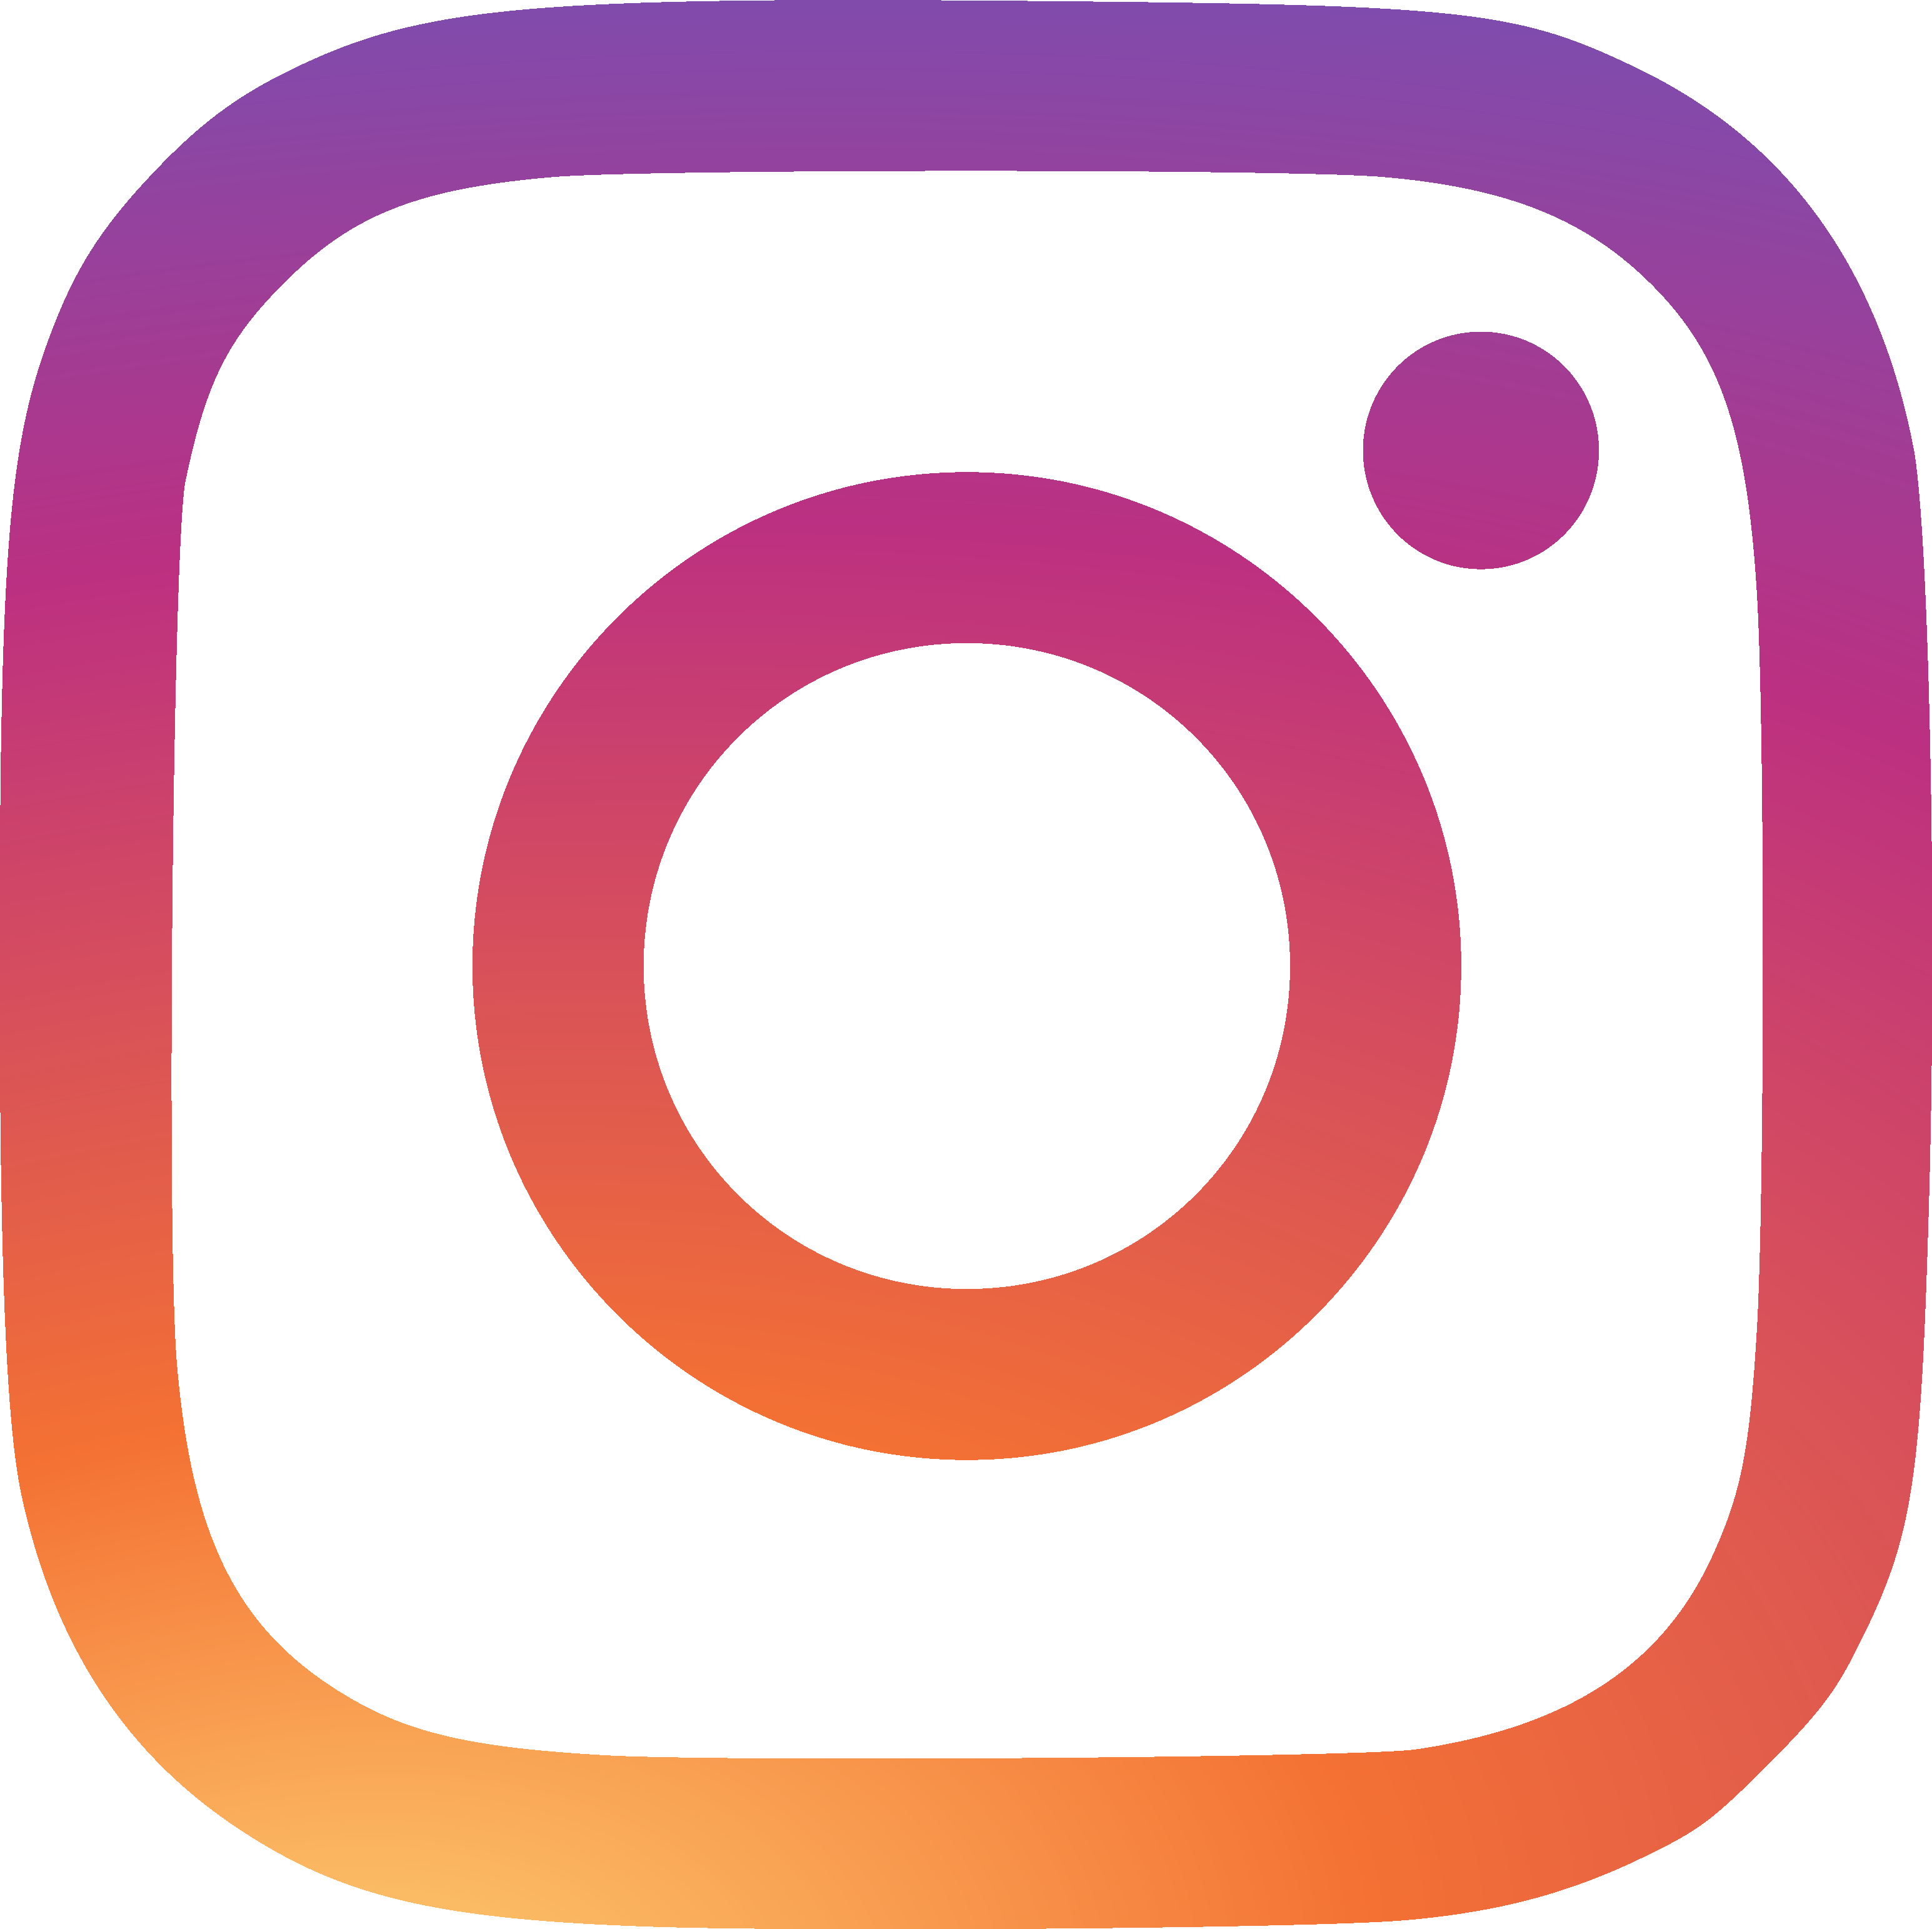 Download Free Computer Neon Instagram Icons HD Image Free PNG ICON favicon | FreePNGImg